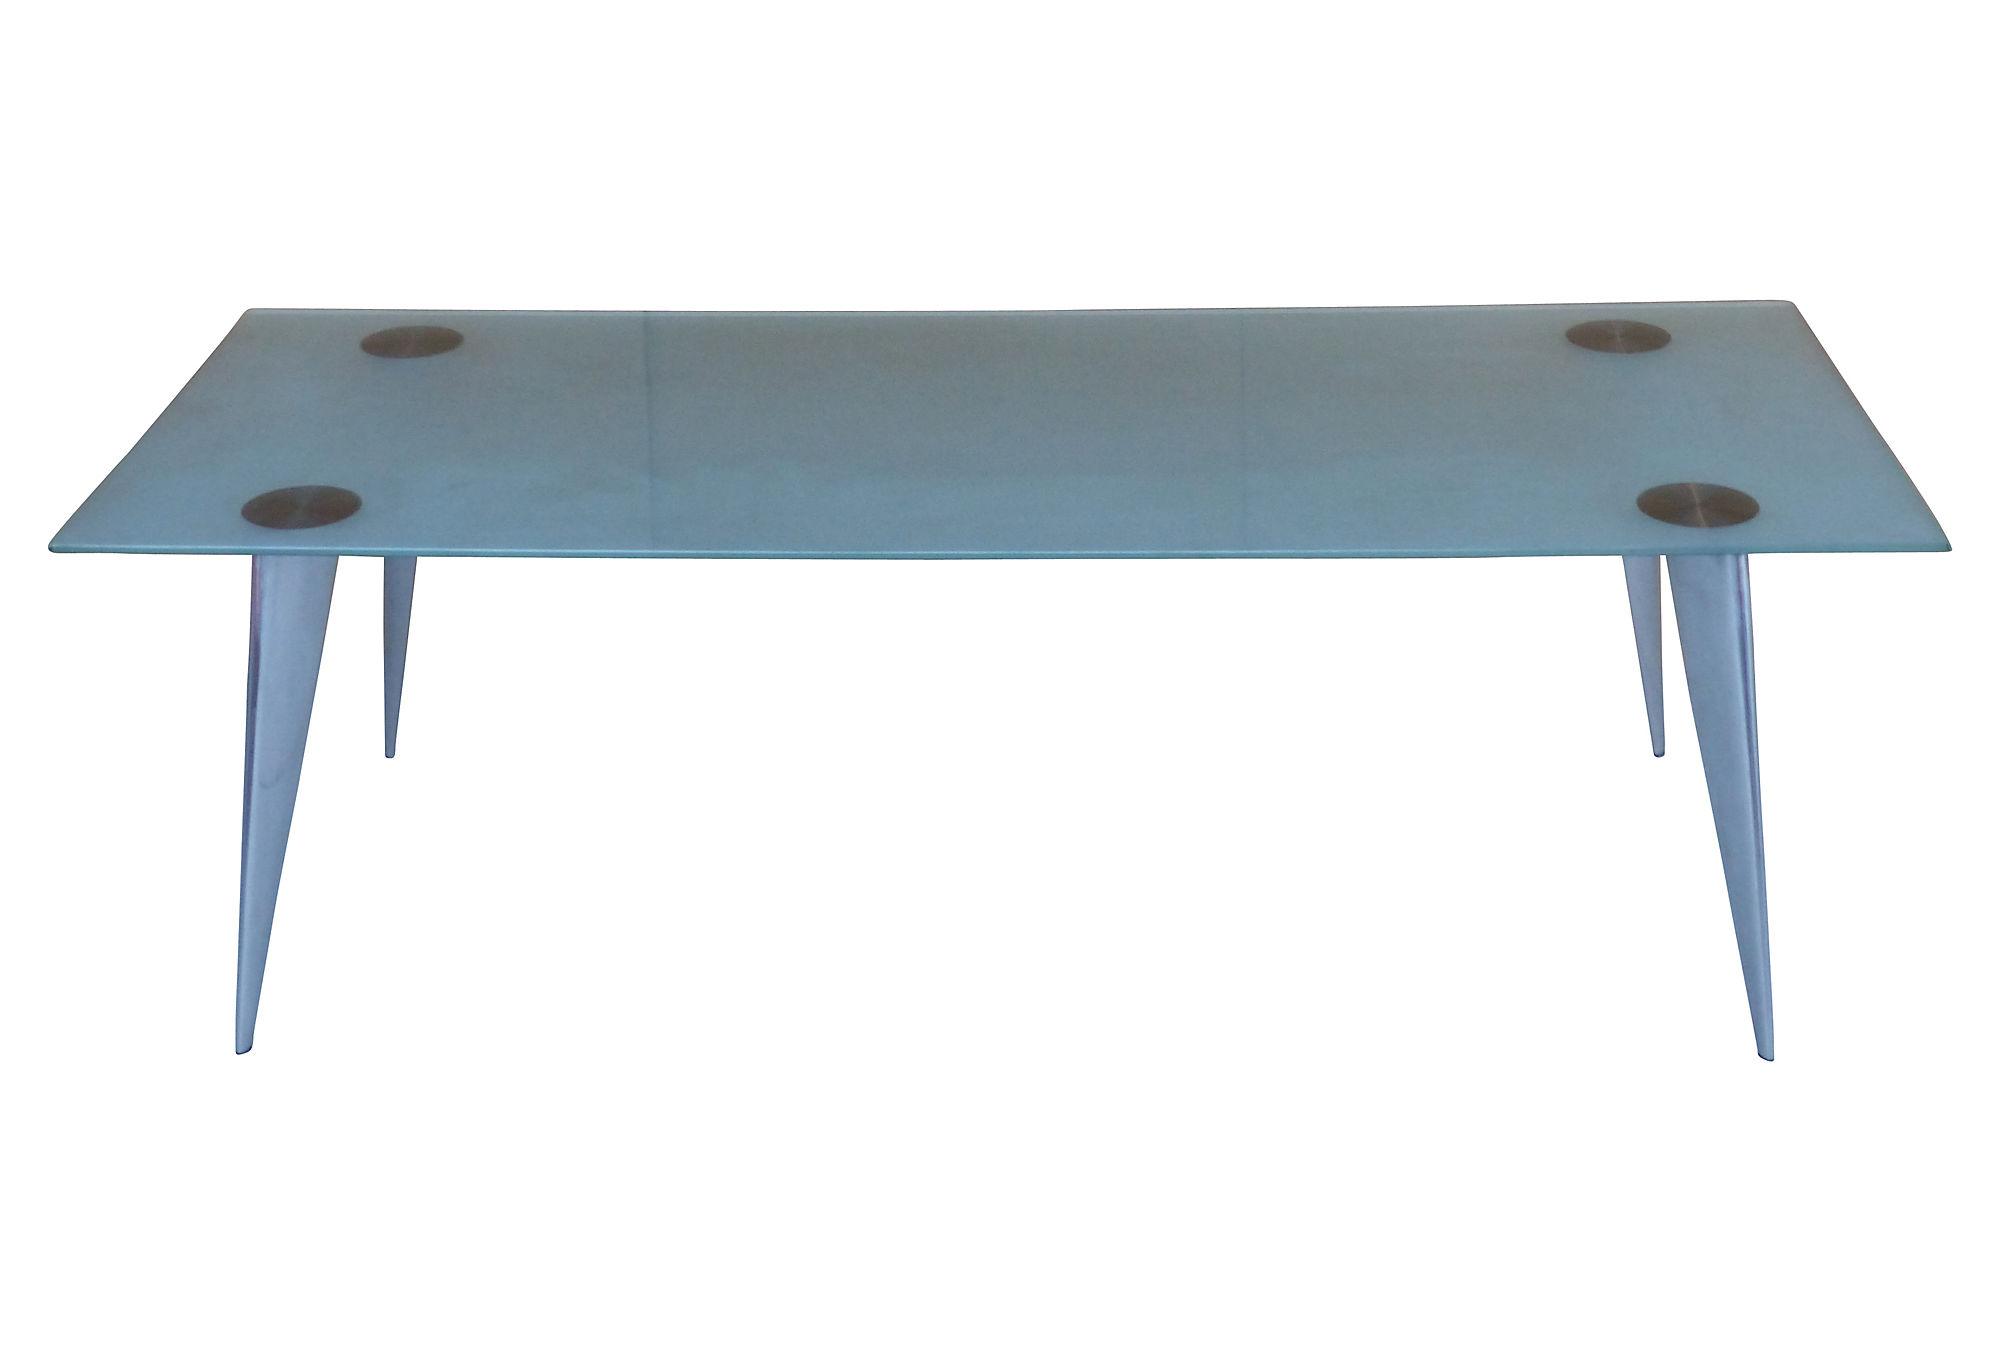 Philippe starck s rie lang dining table for driade aleph modernism for Philippe starck tables